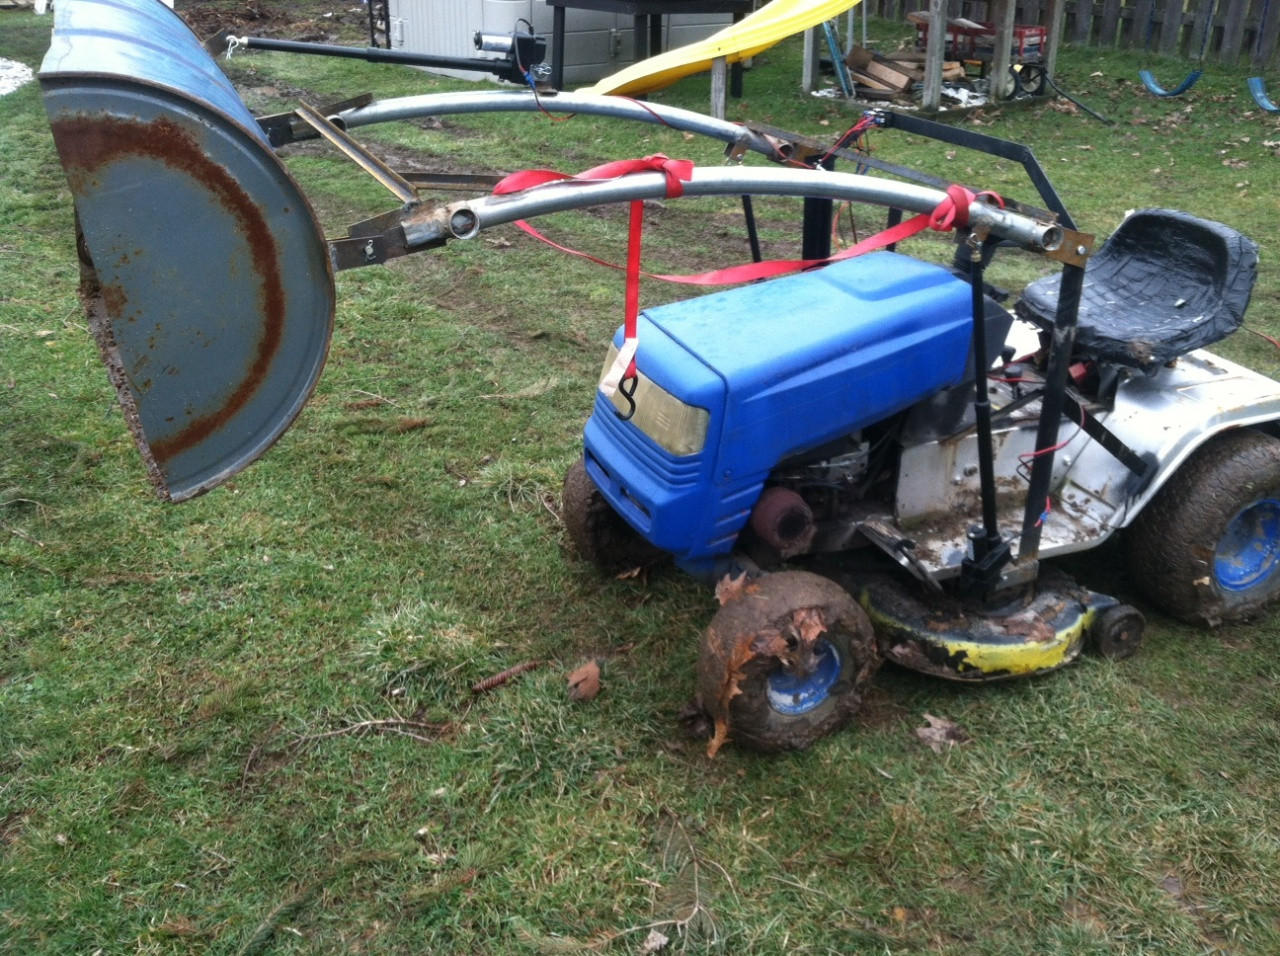 Best ideas about DIY Front End Loader Kit . Save or Pin Diy Front End Loader For Lawn Tractor DIY Projects Now.